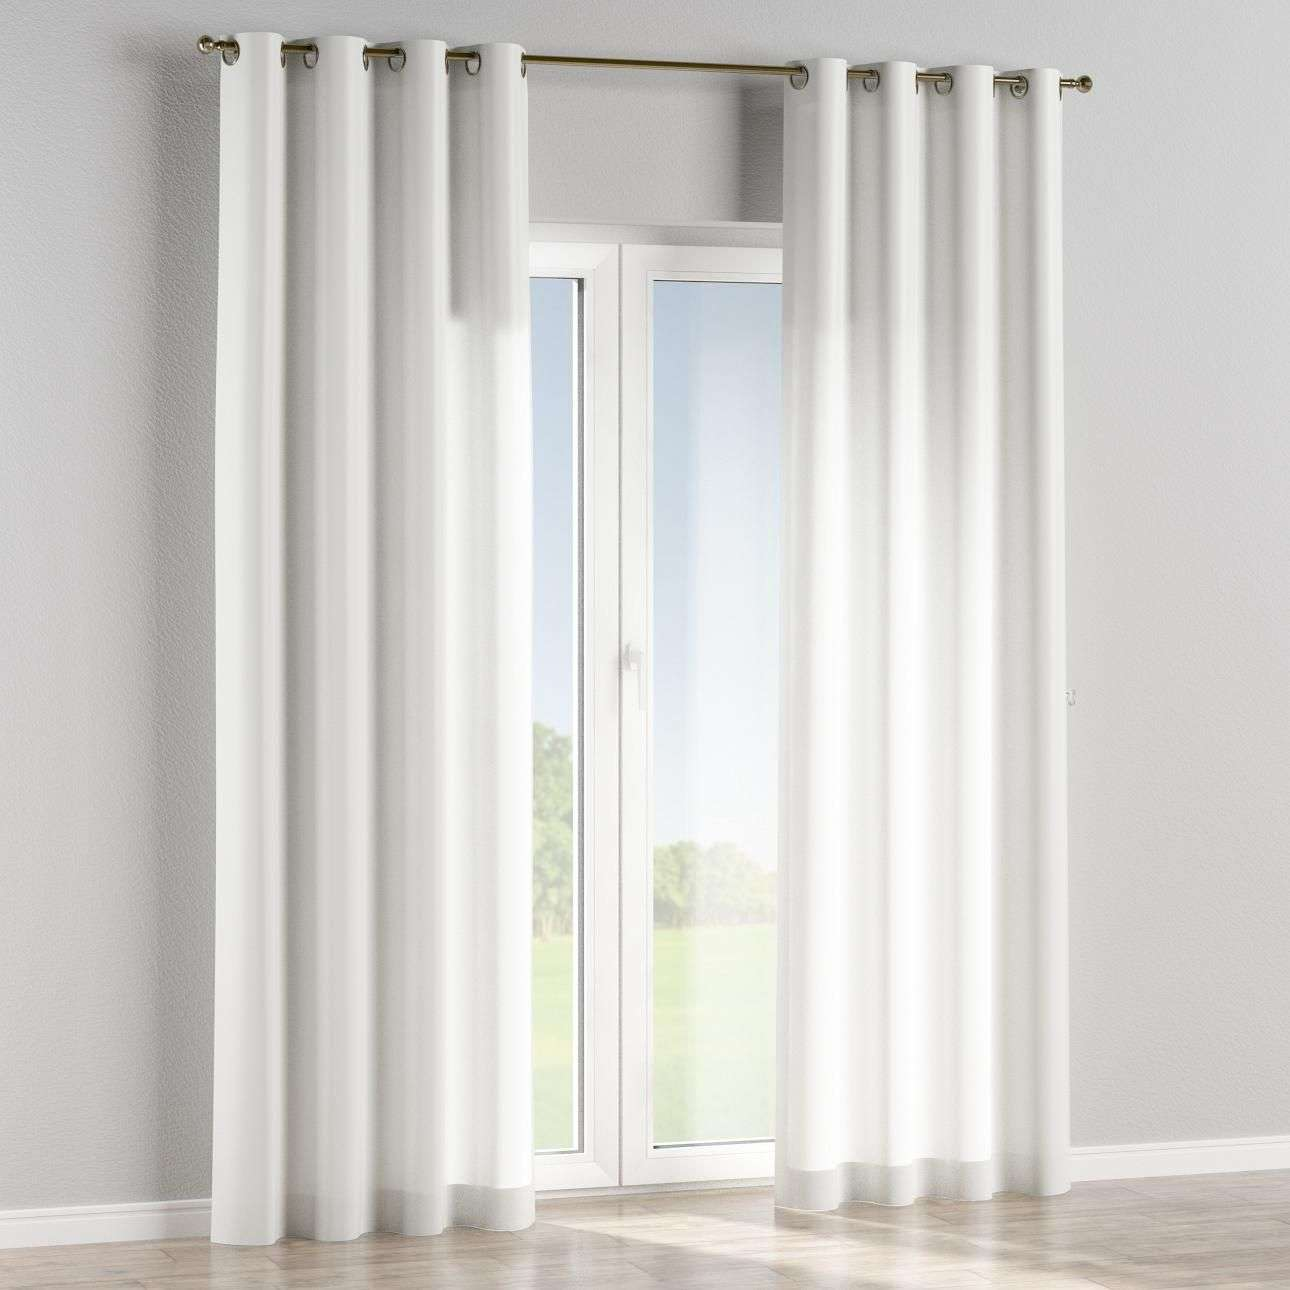 Eyelet curtains in collection Taffeta, fabric: 103-86